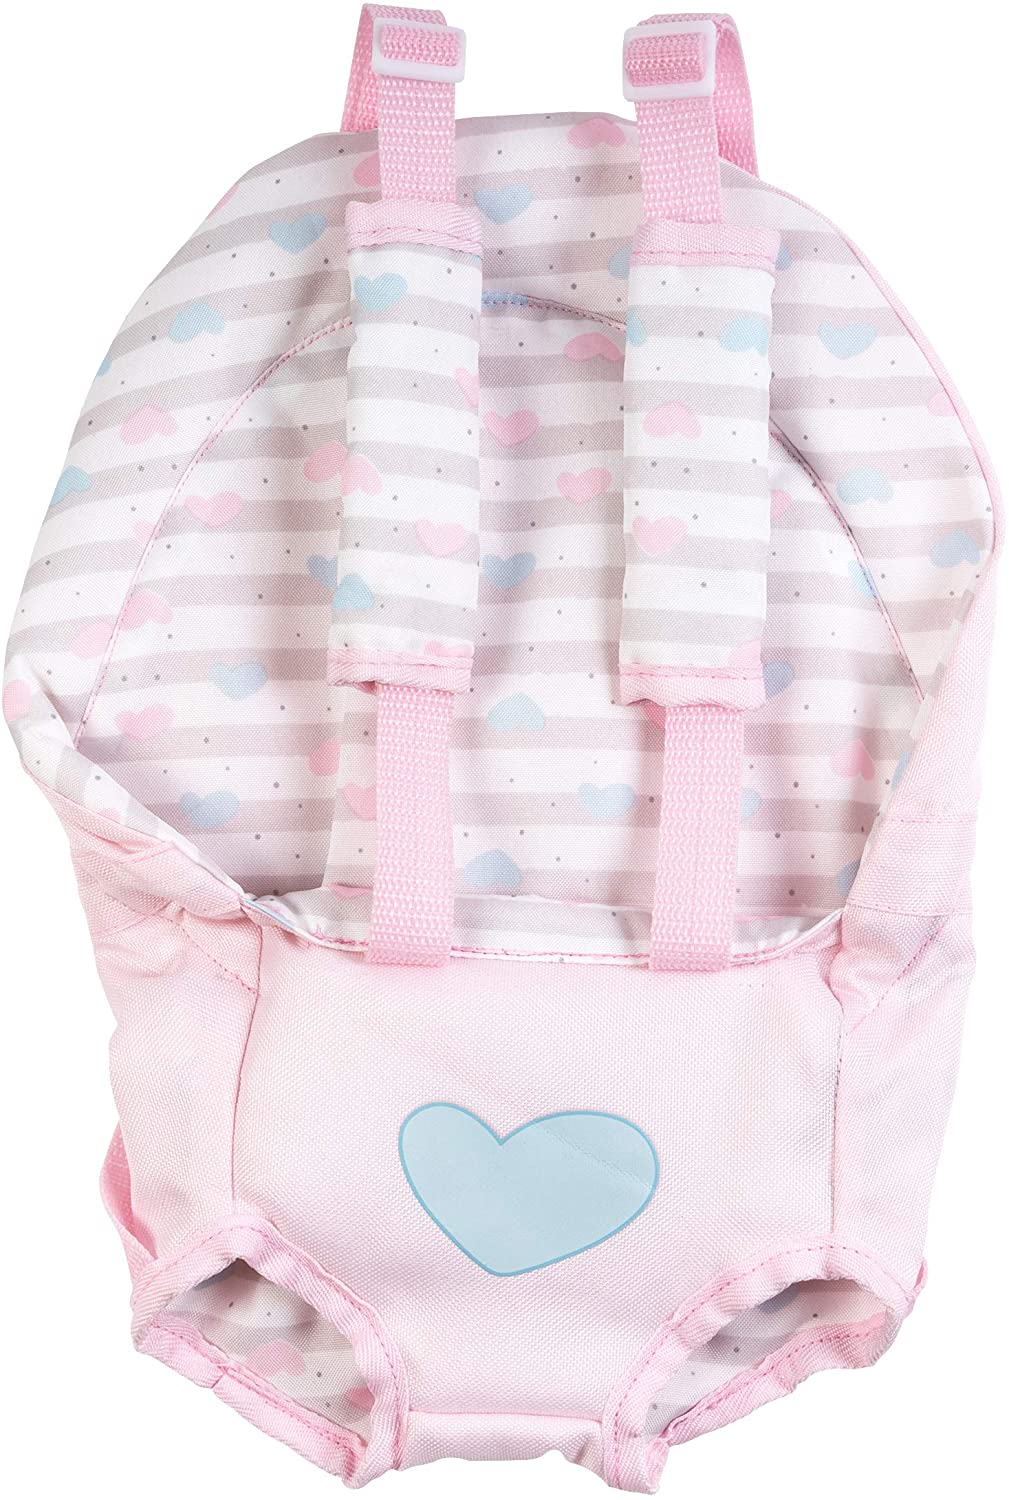 Adora Baby Doll Carrier In Classic Pastel Pink, Fits Up To 20 Inch Baby Dolls